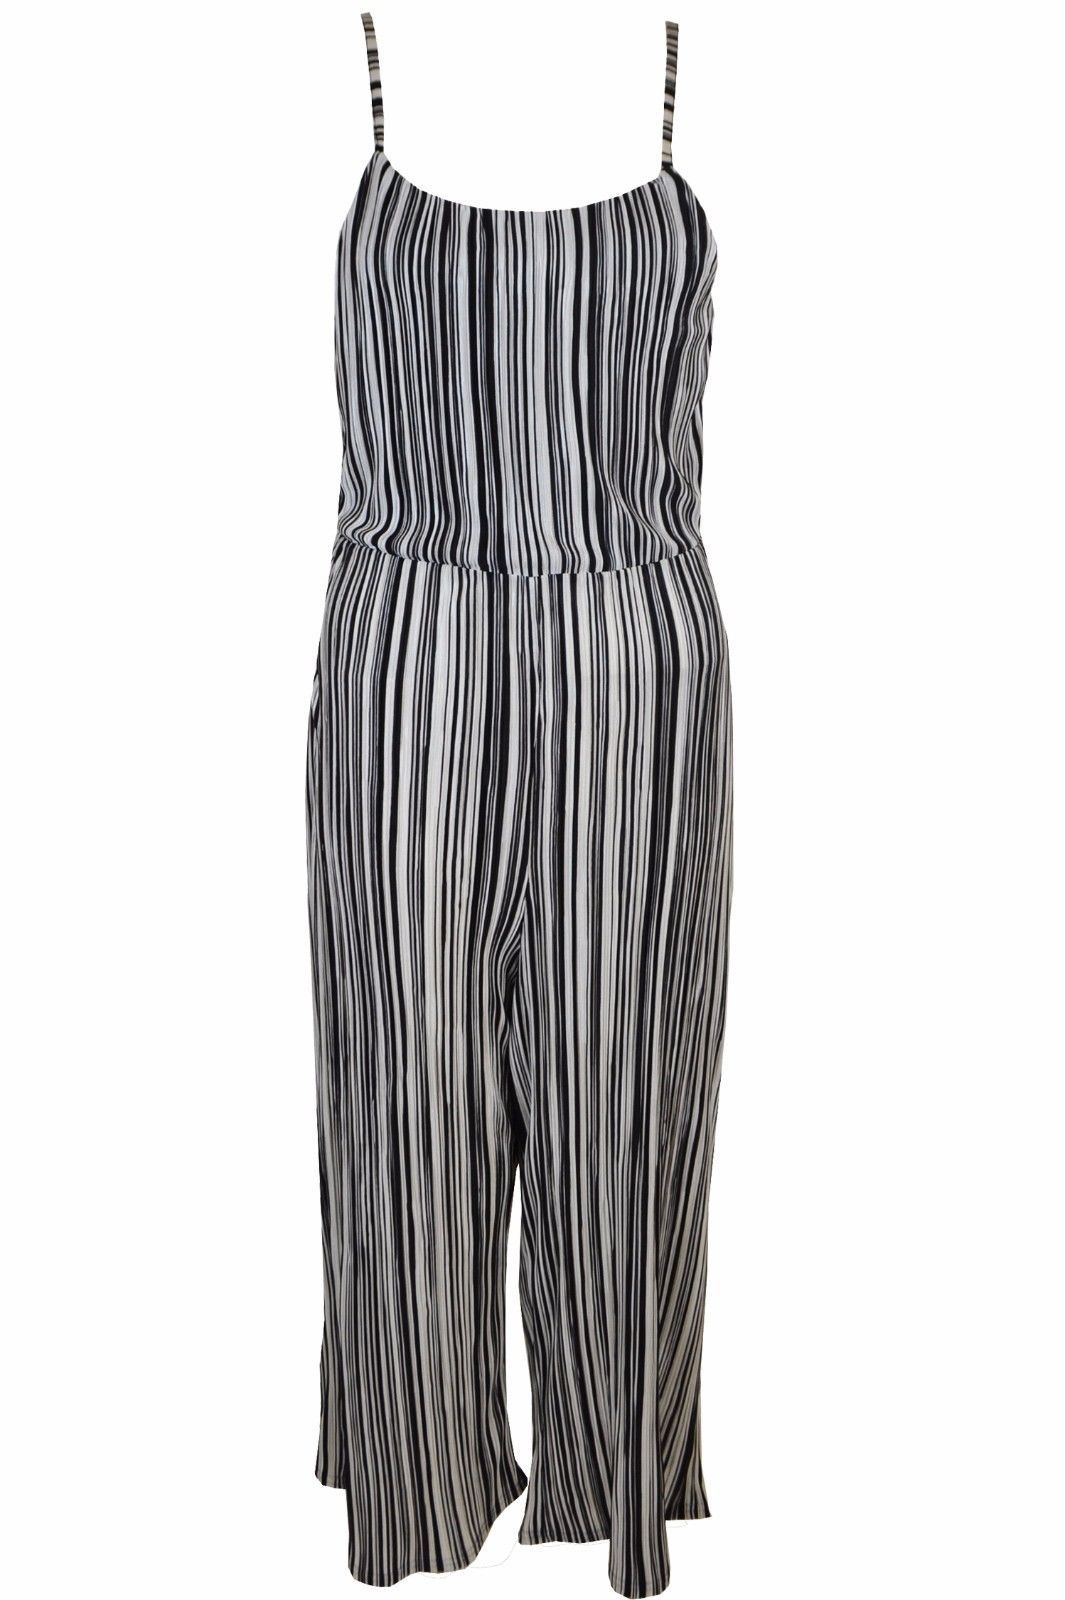 66937f1358b S l1600. S l1600. Previous. New Womens Ladies Pleated Strappy Tie Back  Culotte Jumpsuit Stripe Size 6-14 UK